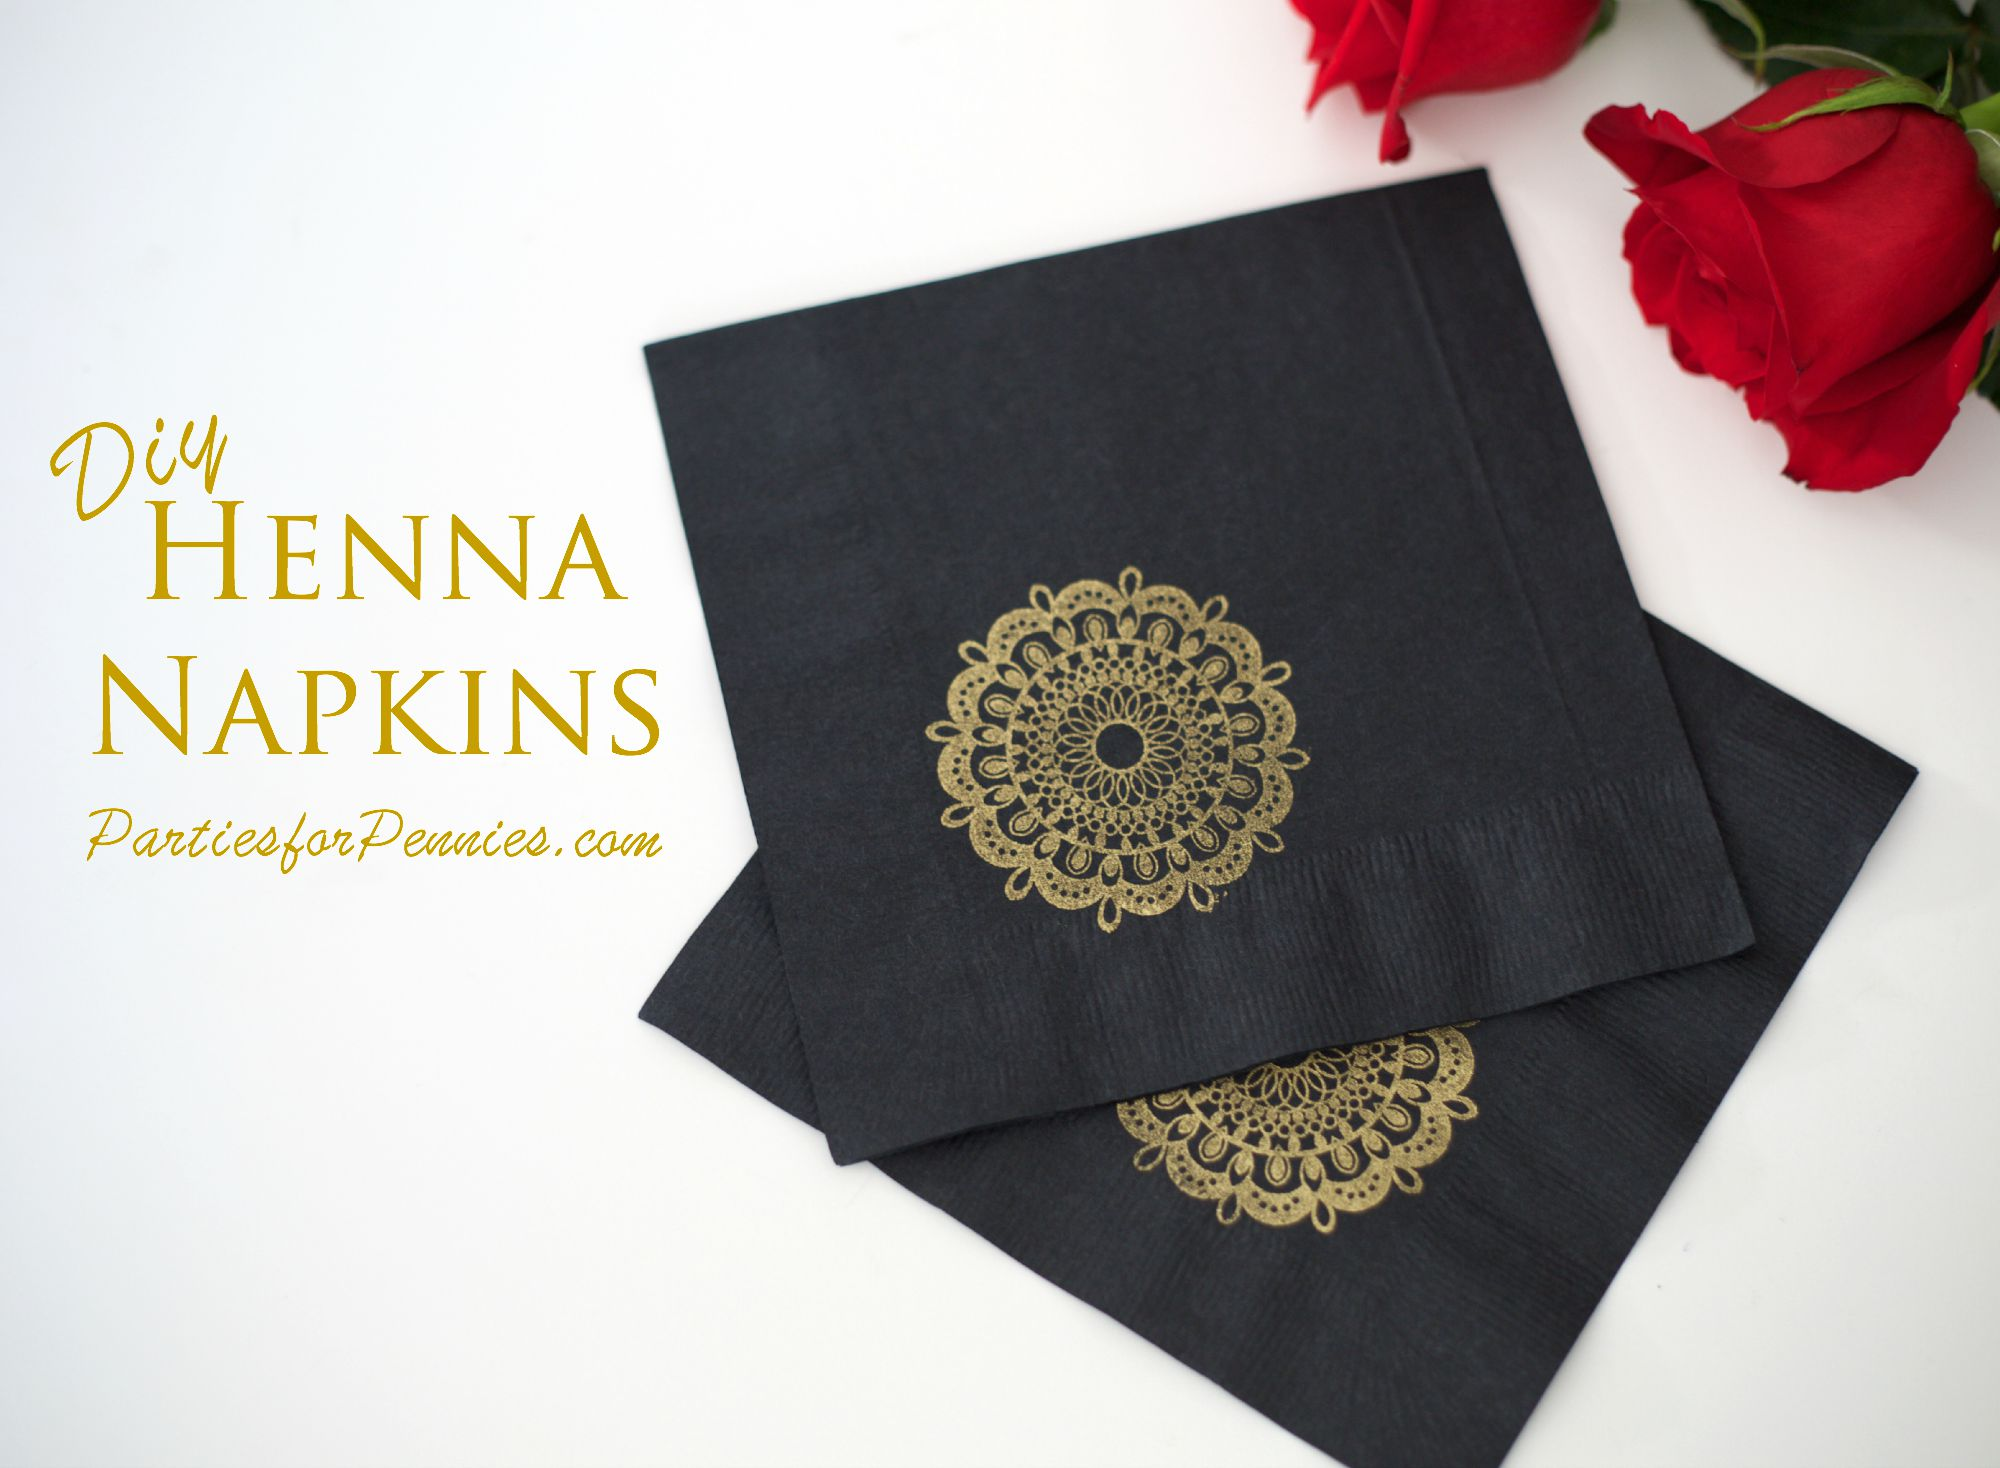 Diy Henna Napkins Parties For Pennies